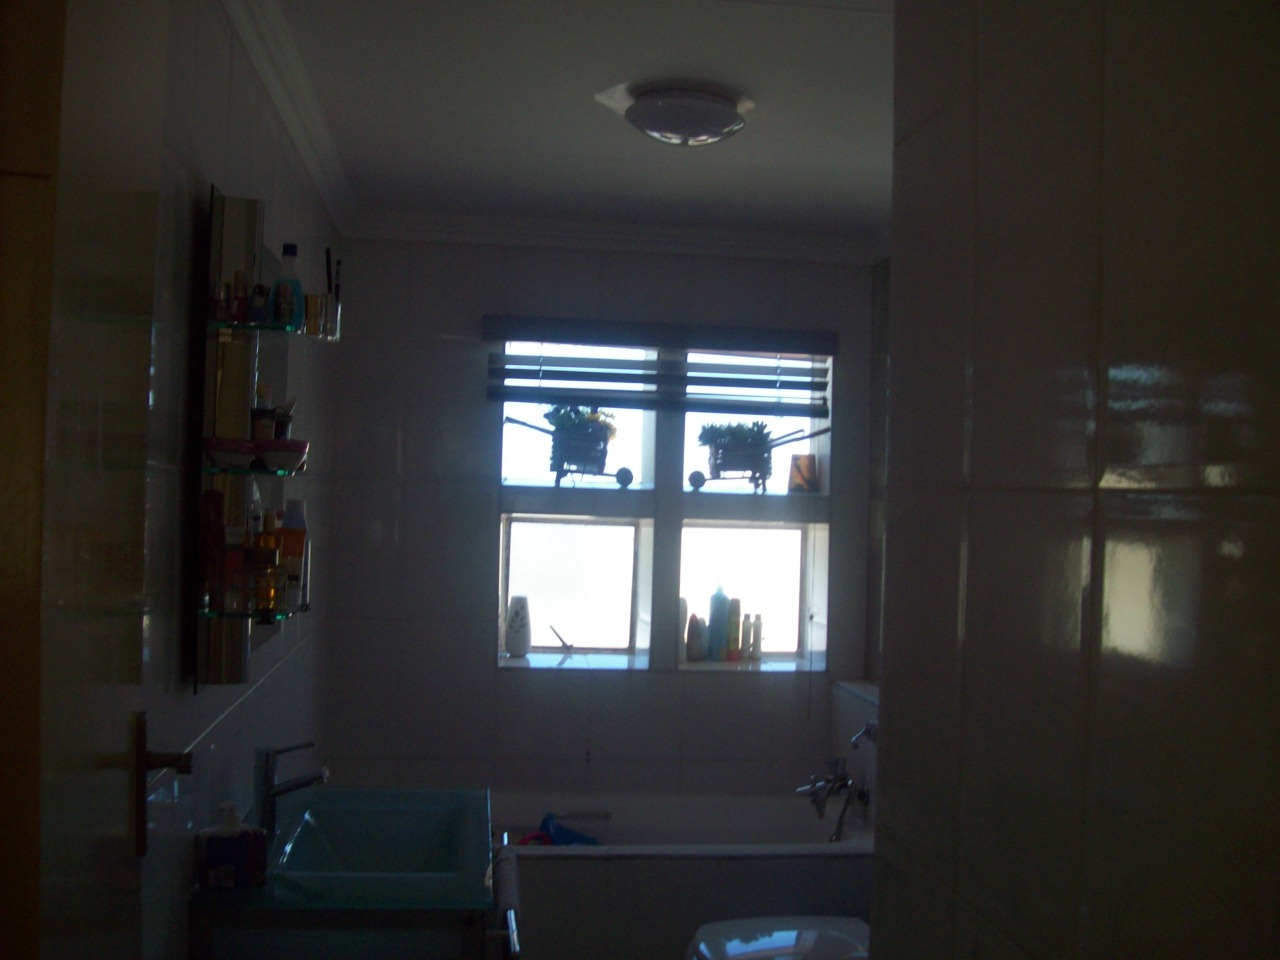 3 Bedroom Townhouse for sale in Bassonia ENT0071278 : photo#39